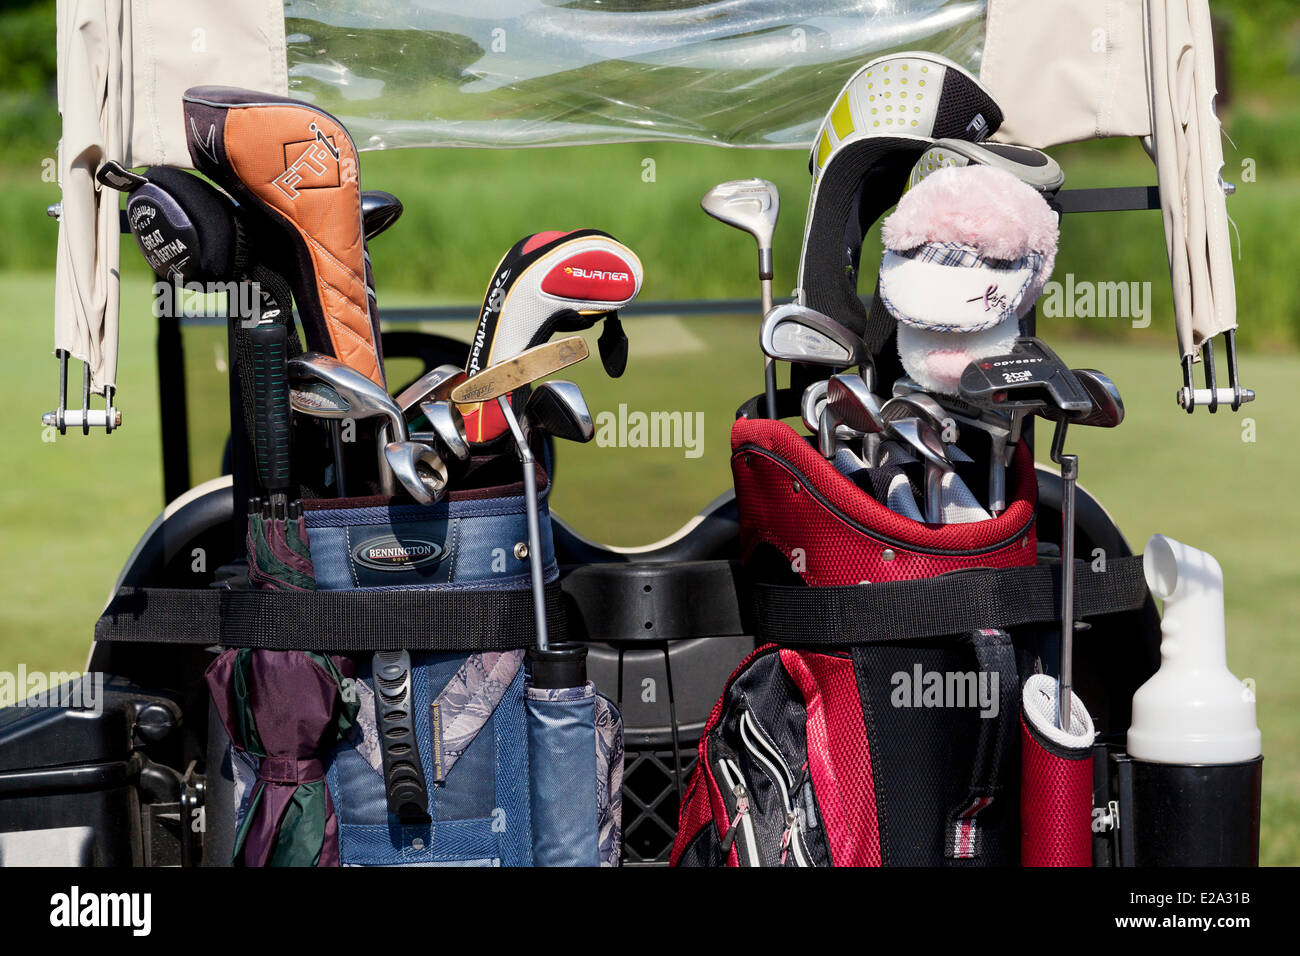 Canada, Quebec Province, illustration, golf bags and golf clubs - Stock Image